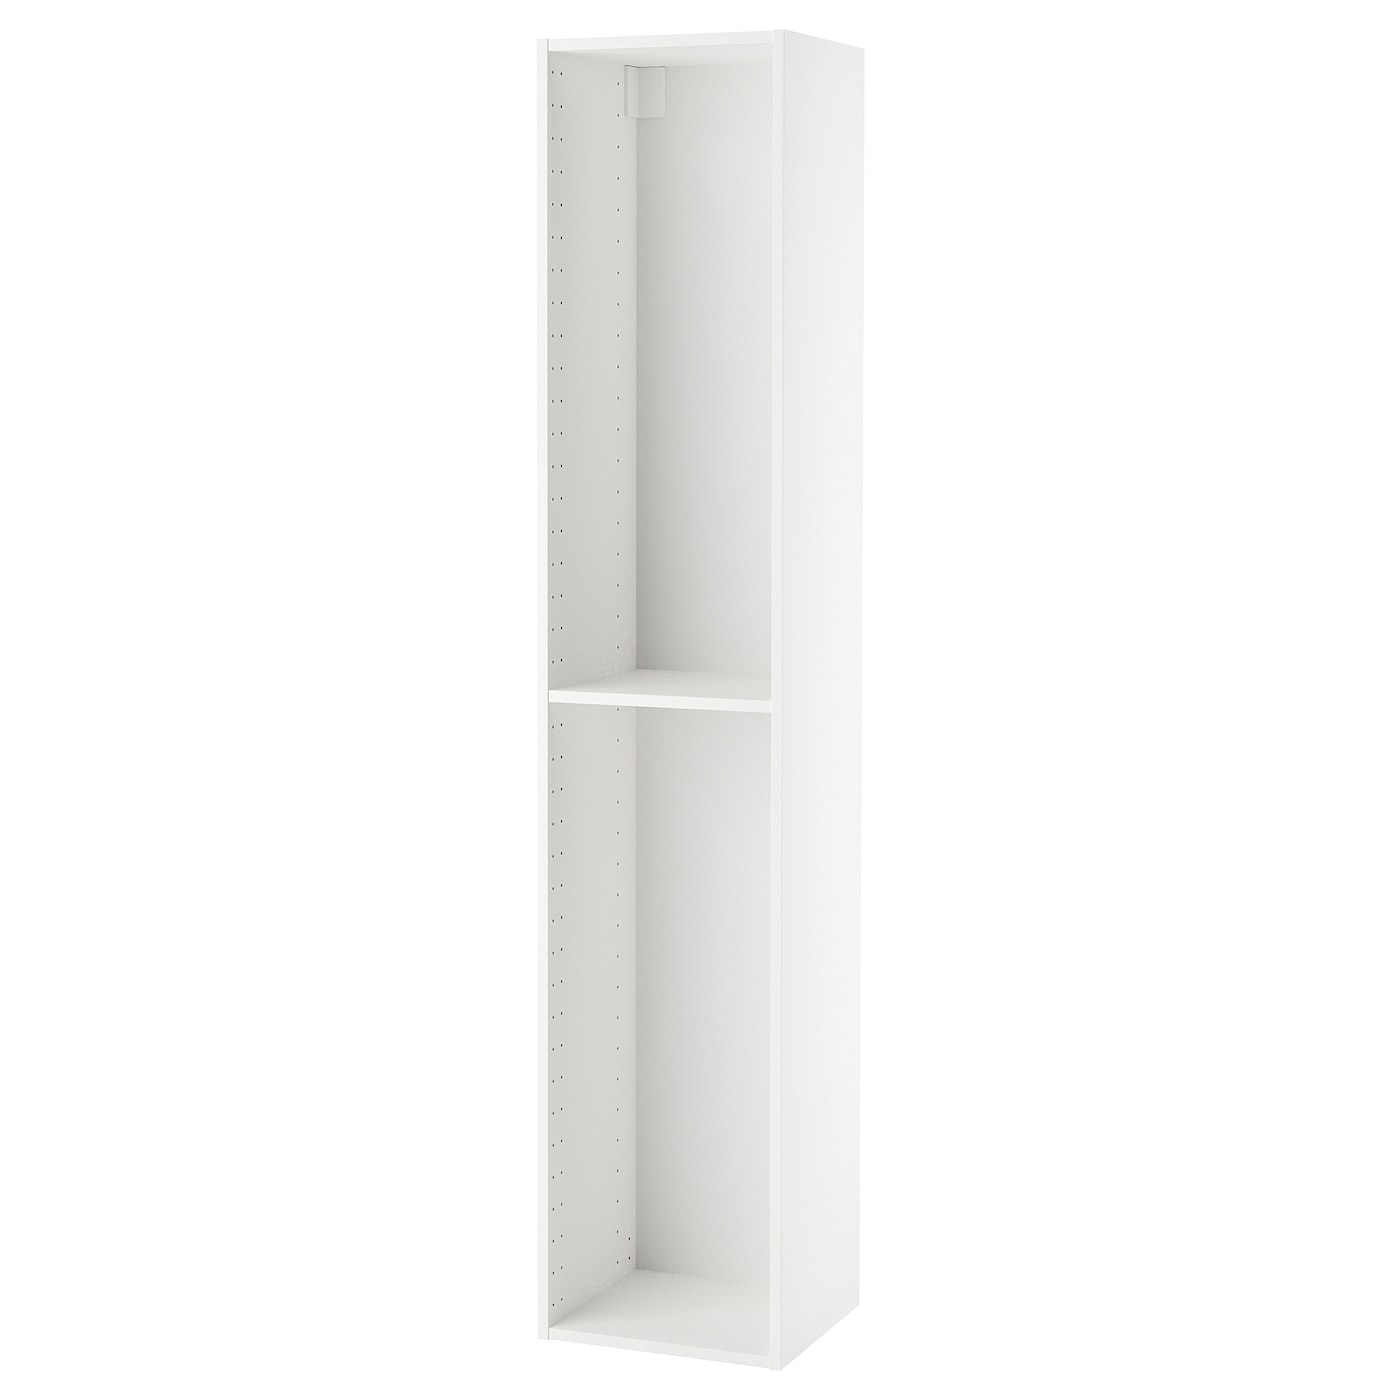 Metod High Cabinet Frame White Ikea Switzerland